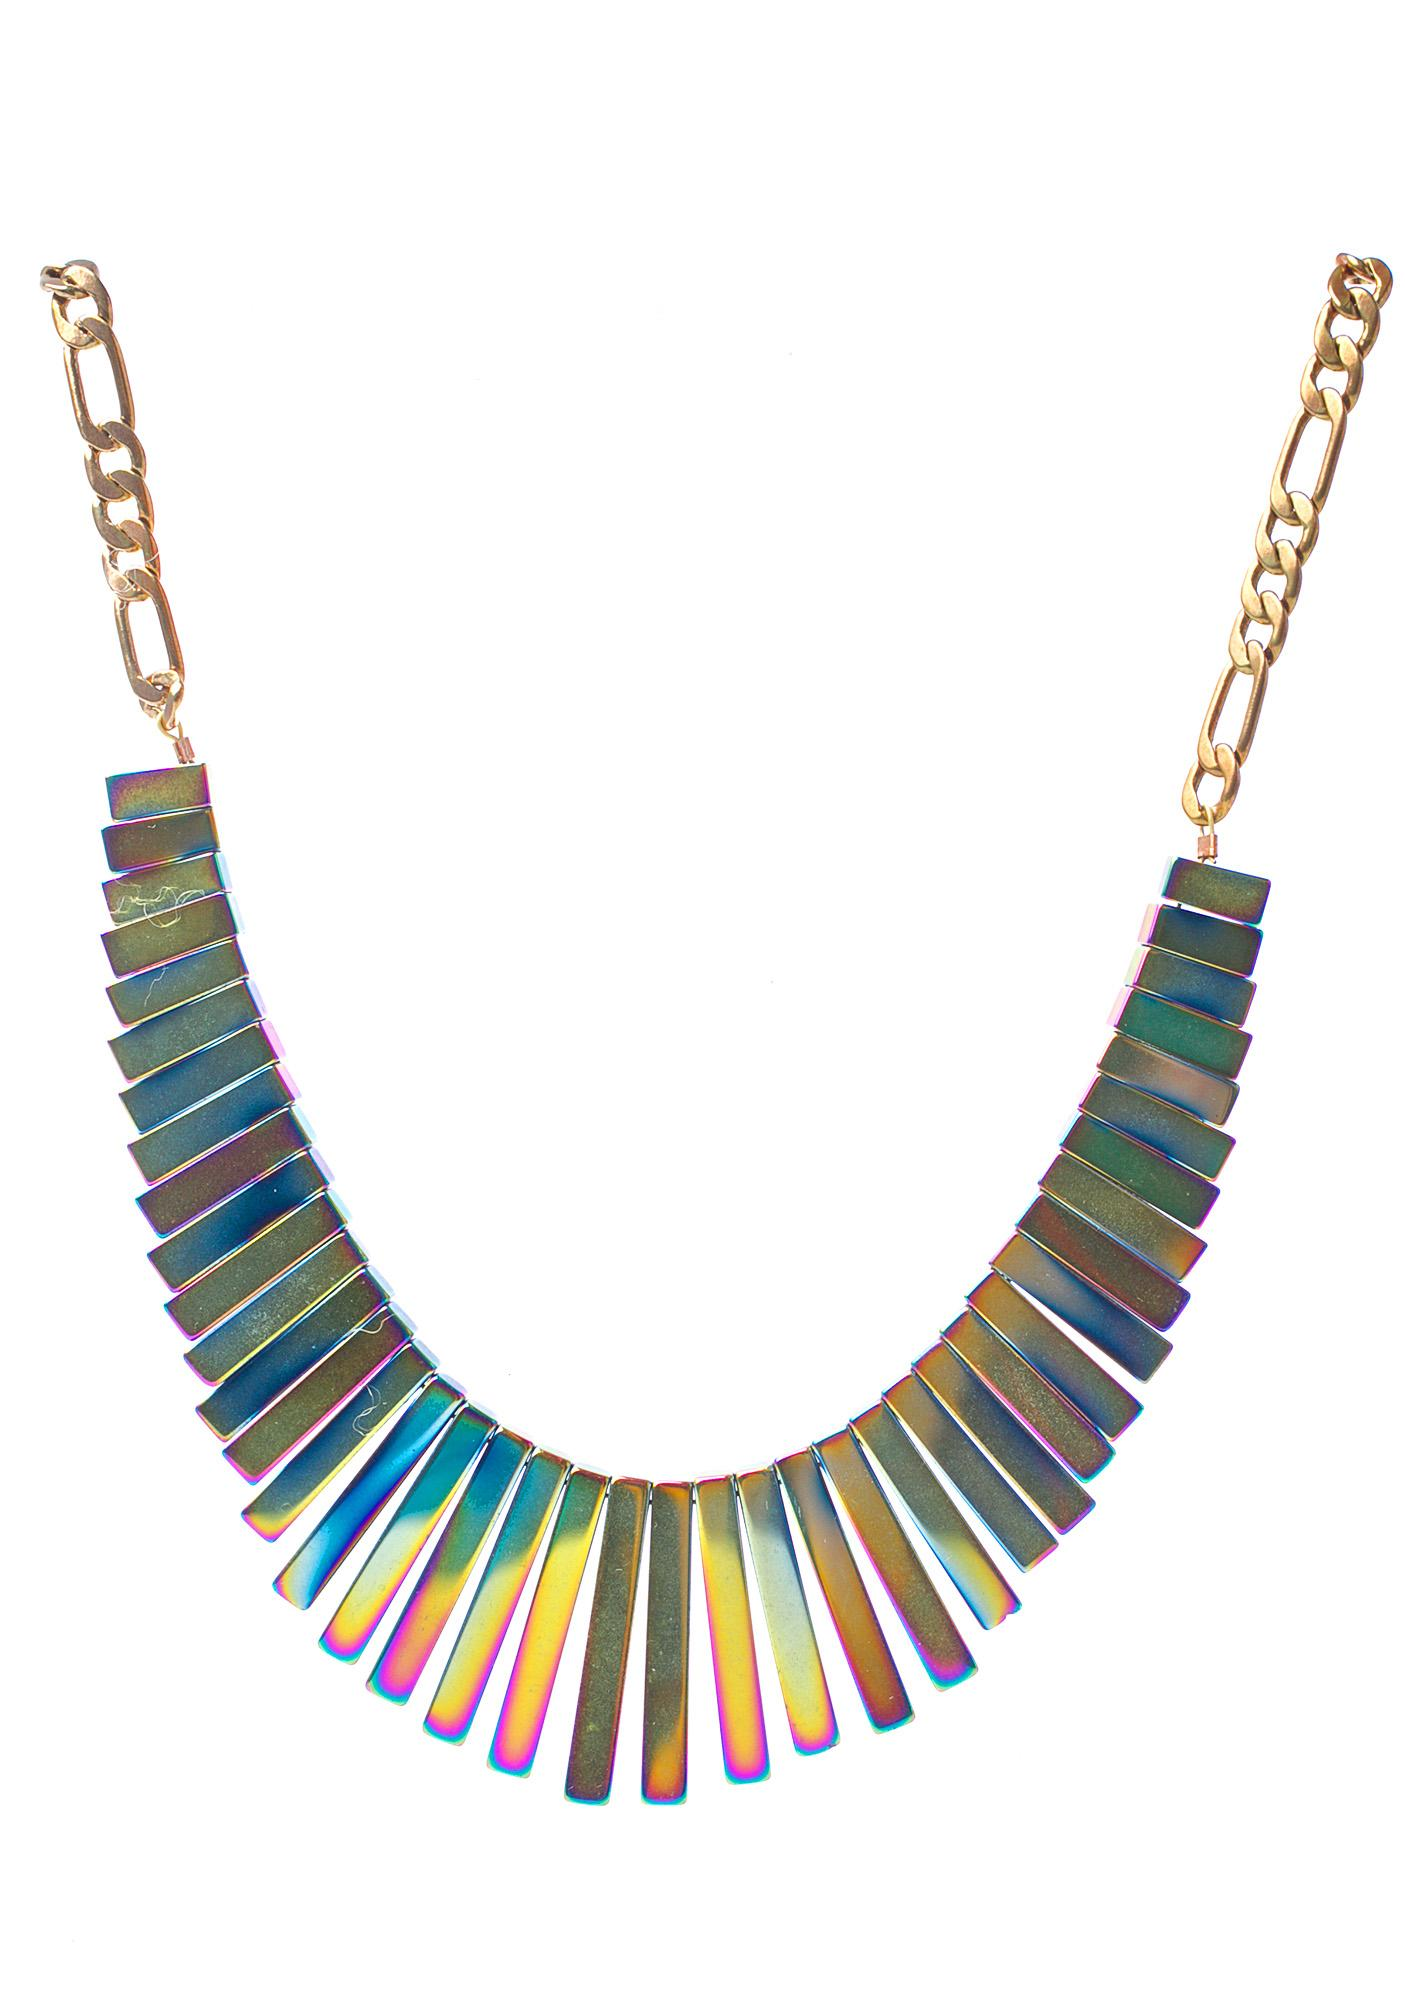 Vittrock Hematite Collar Necklace